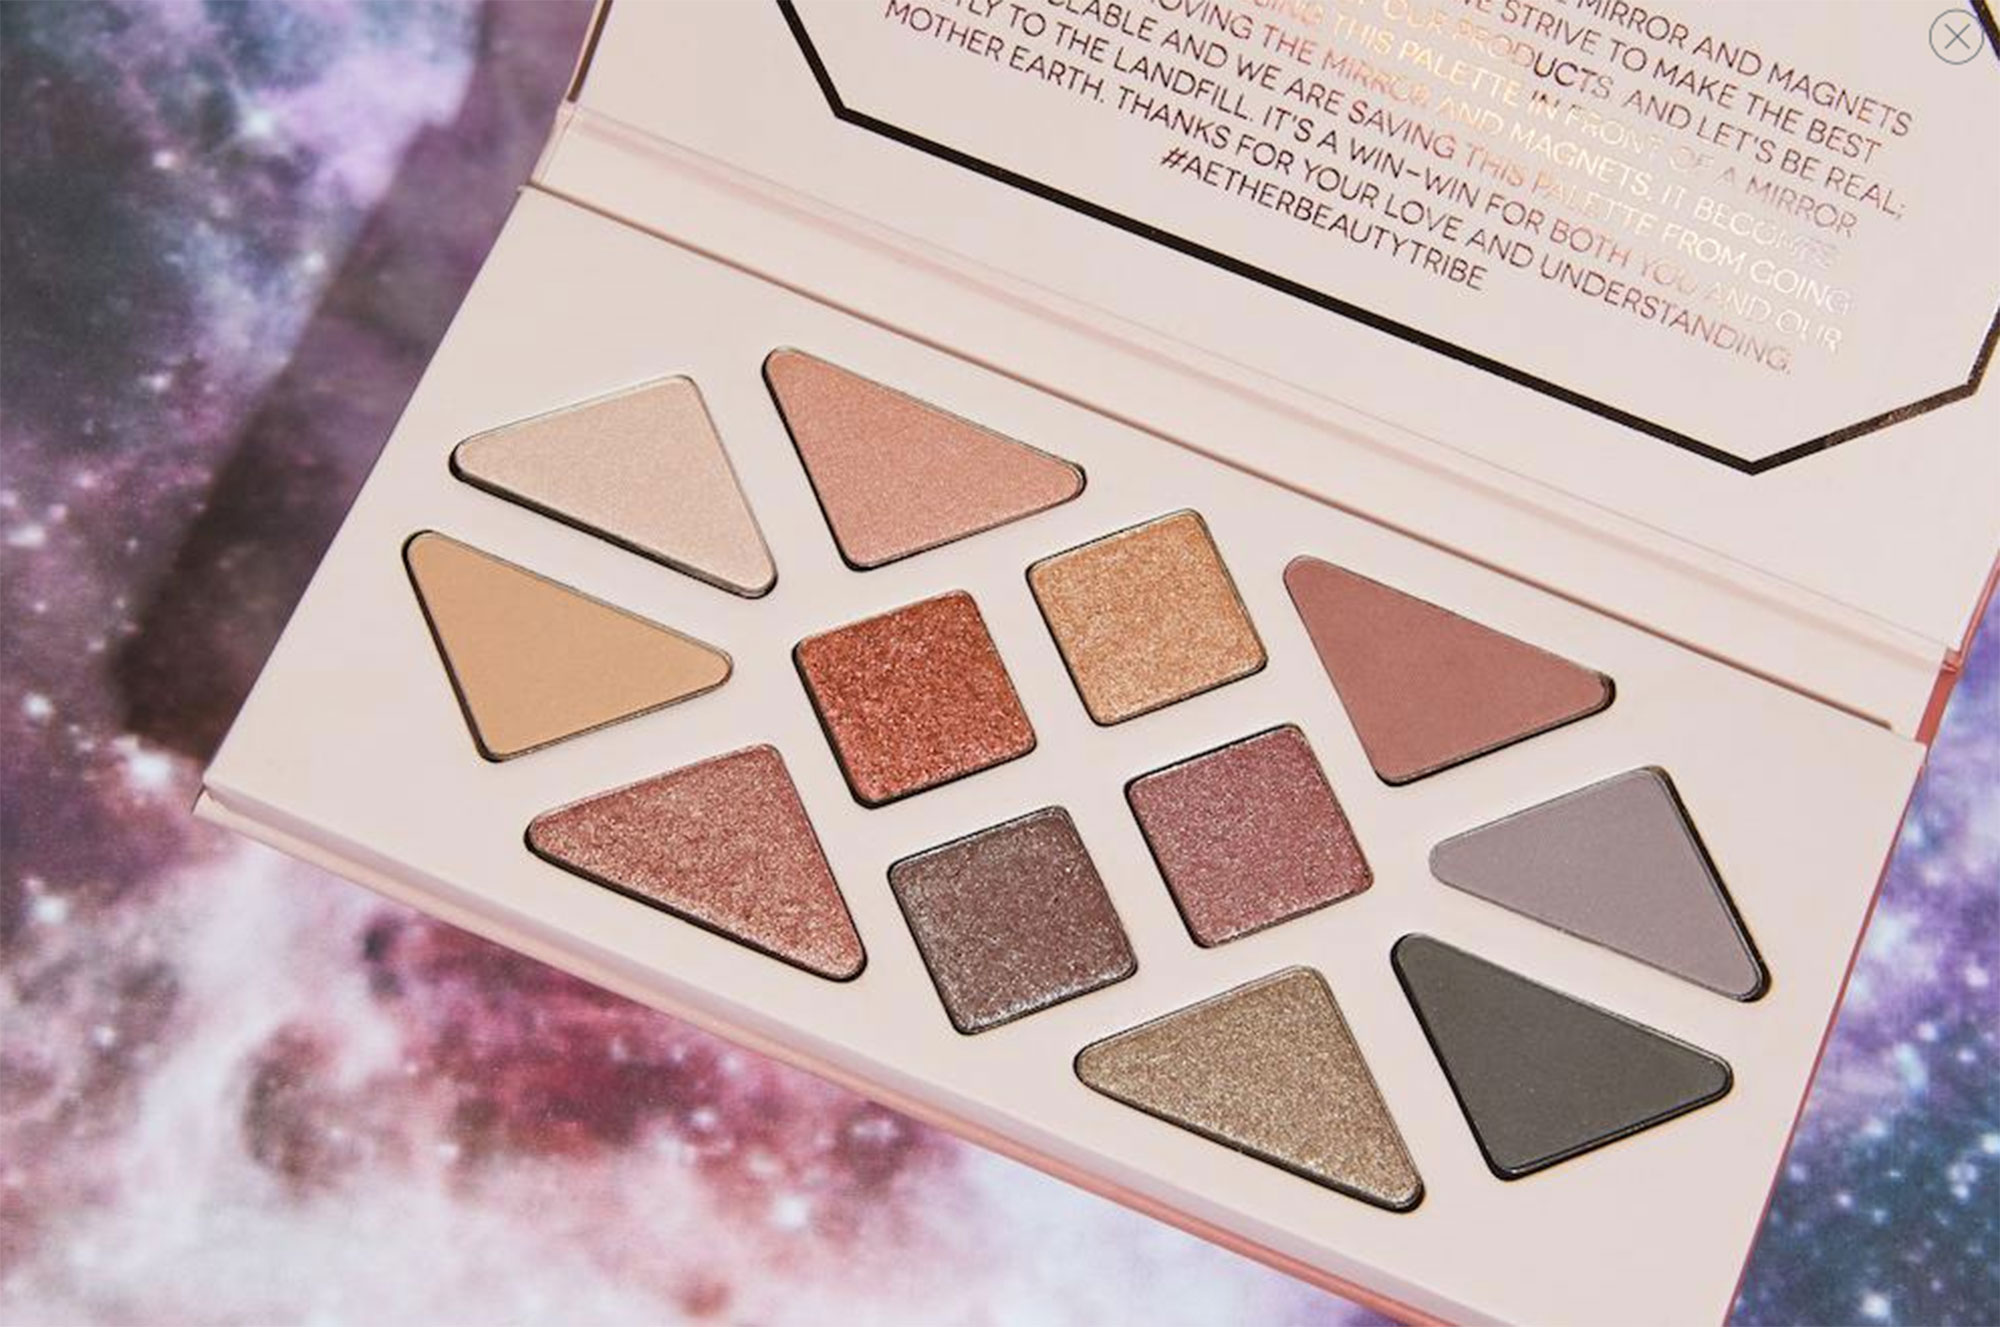 Valentine's Day Gift Guide 2019: Beauty and Fashion Ideas for the Lady in Your Life - Allow her to look good and do good with these crystal-infused eyeshadows. The matte and shimmer shades are formulated with rose quartz powder and rose hip oil to illuminate skin, and 10 percent of the palette's proceeds benefit The Water Project.